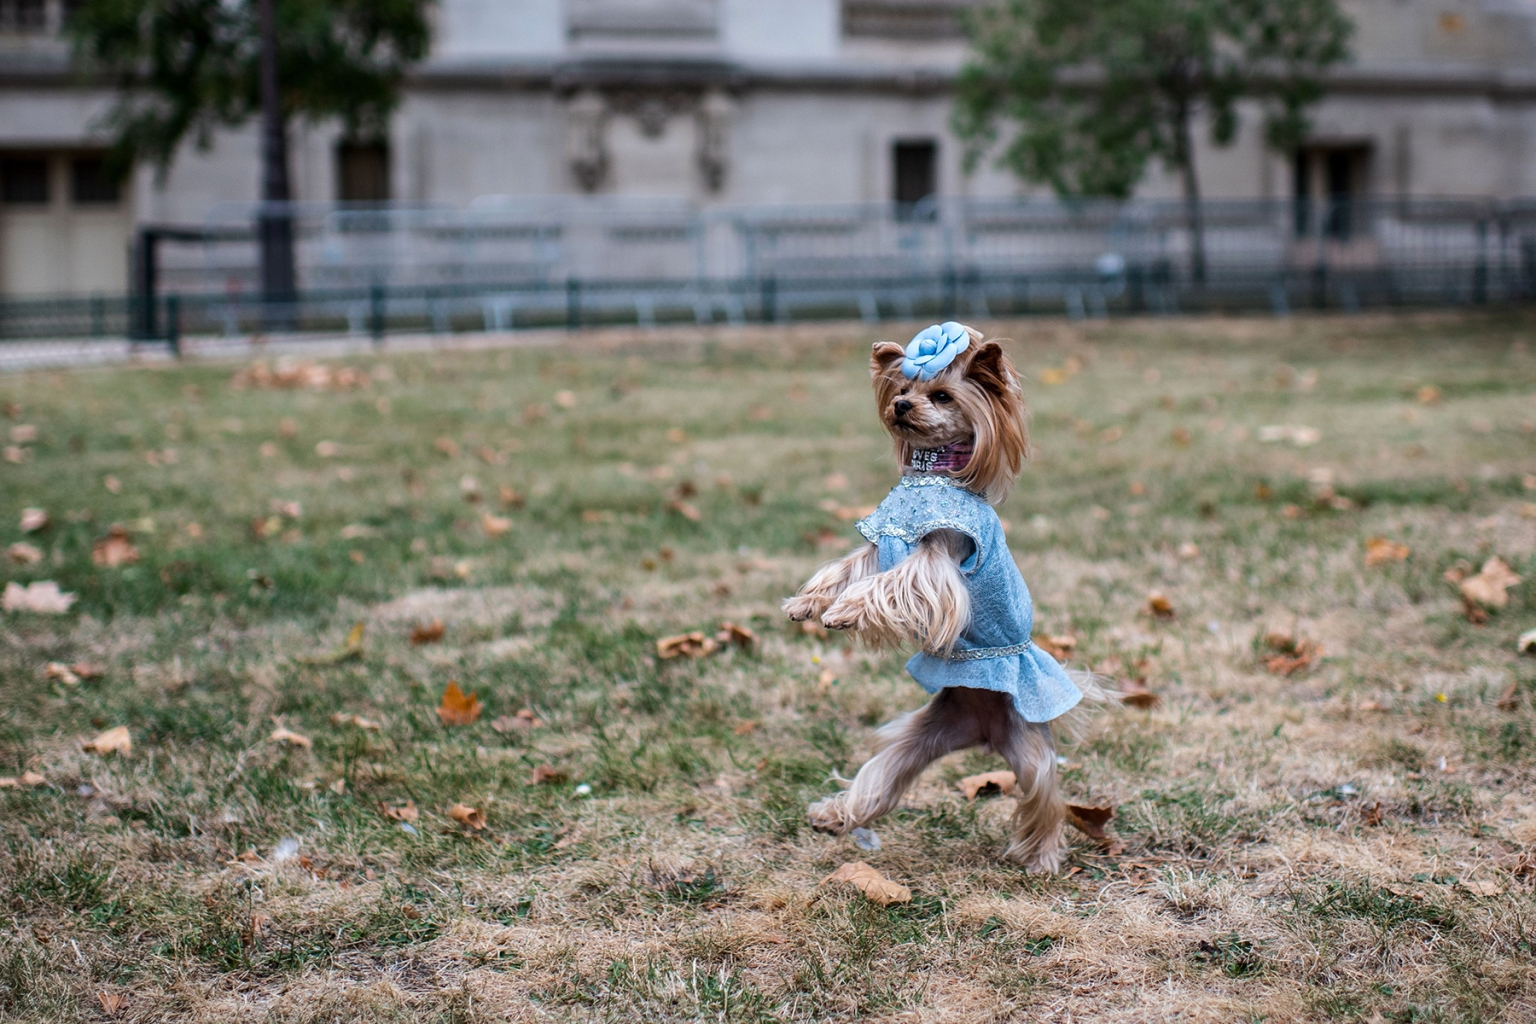 A dog does its best catwalk prior to the Chanel Spring-Summer Ready-to-Wear collection fashion show at the Grand Palais in Paris on Oct. 2. -/AFP/Getty Images